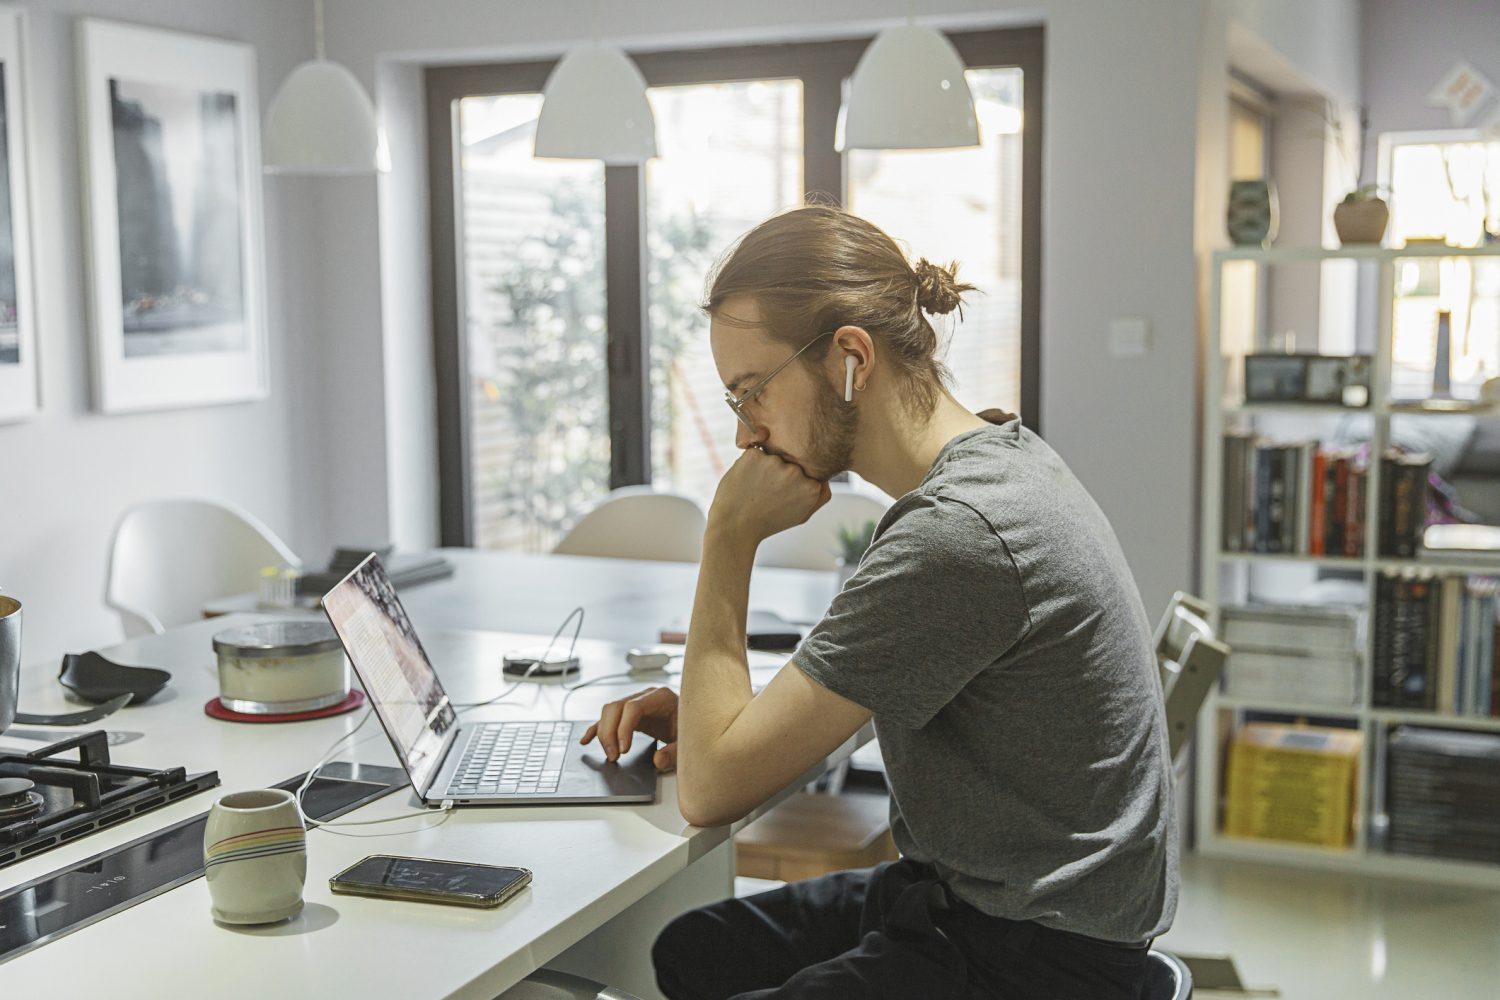 Opportunity to work from home Image